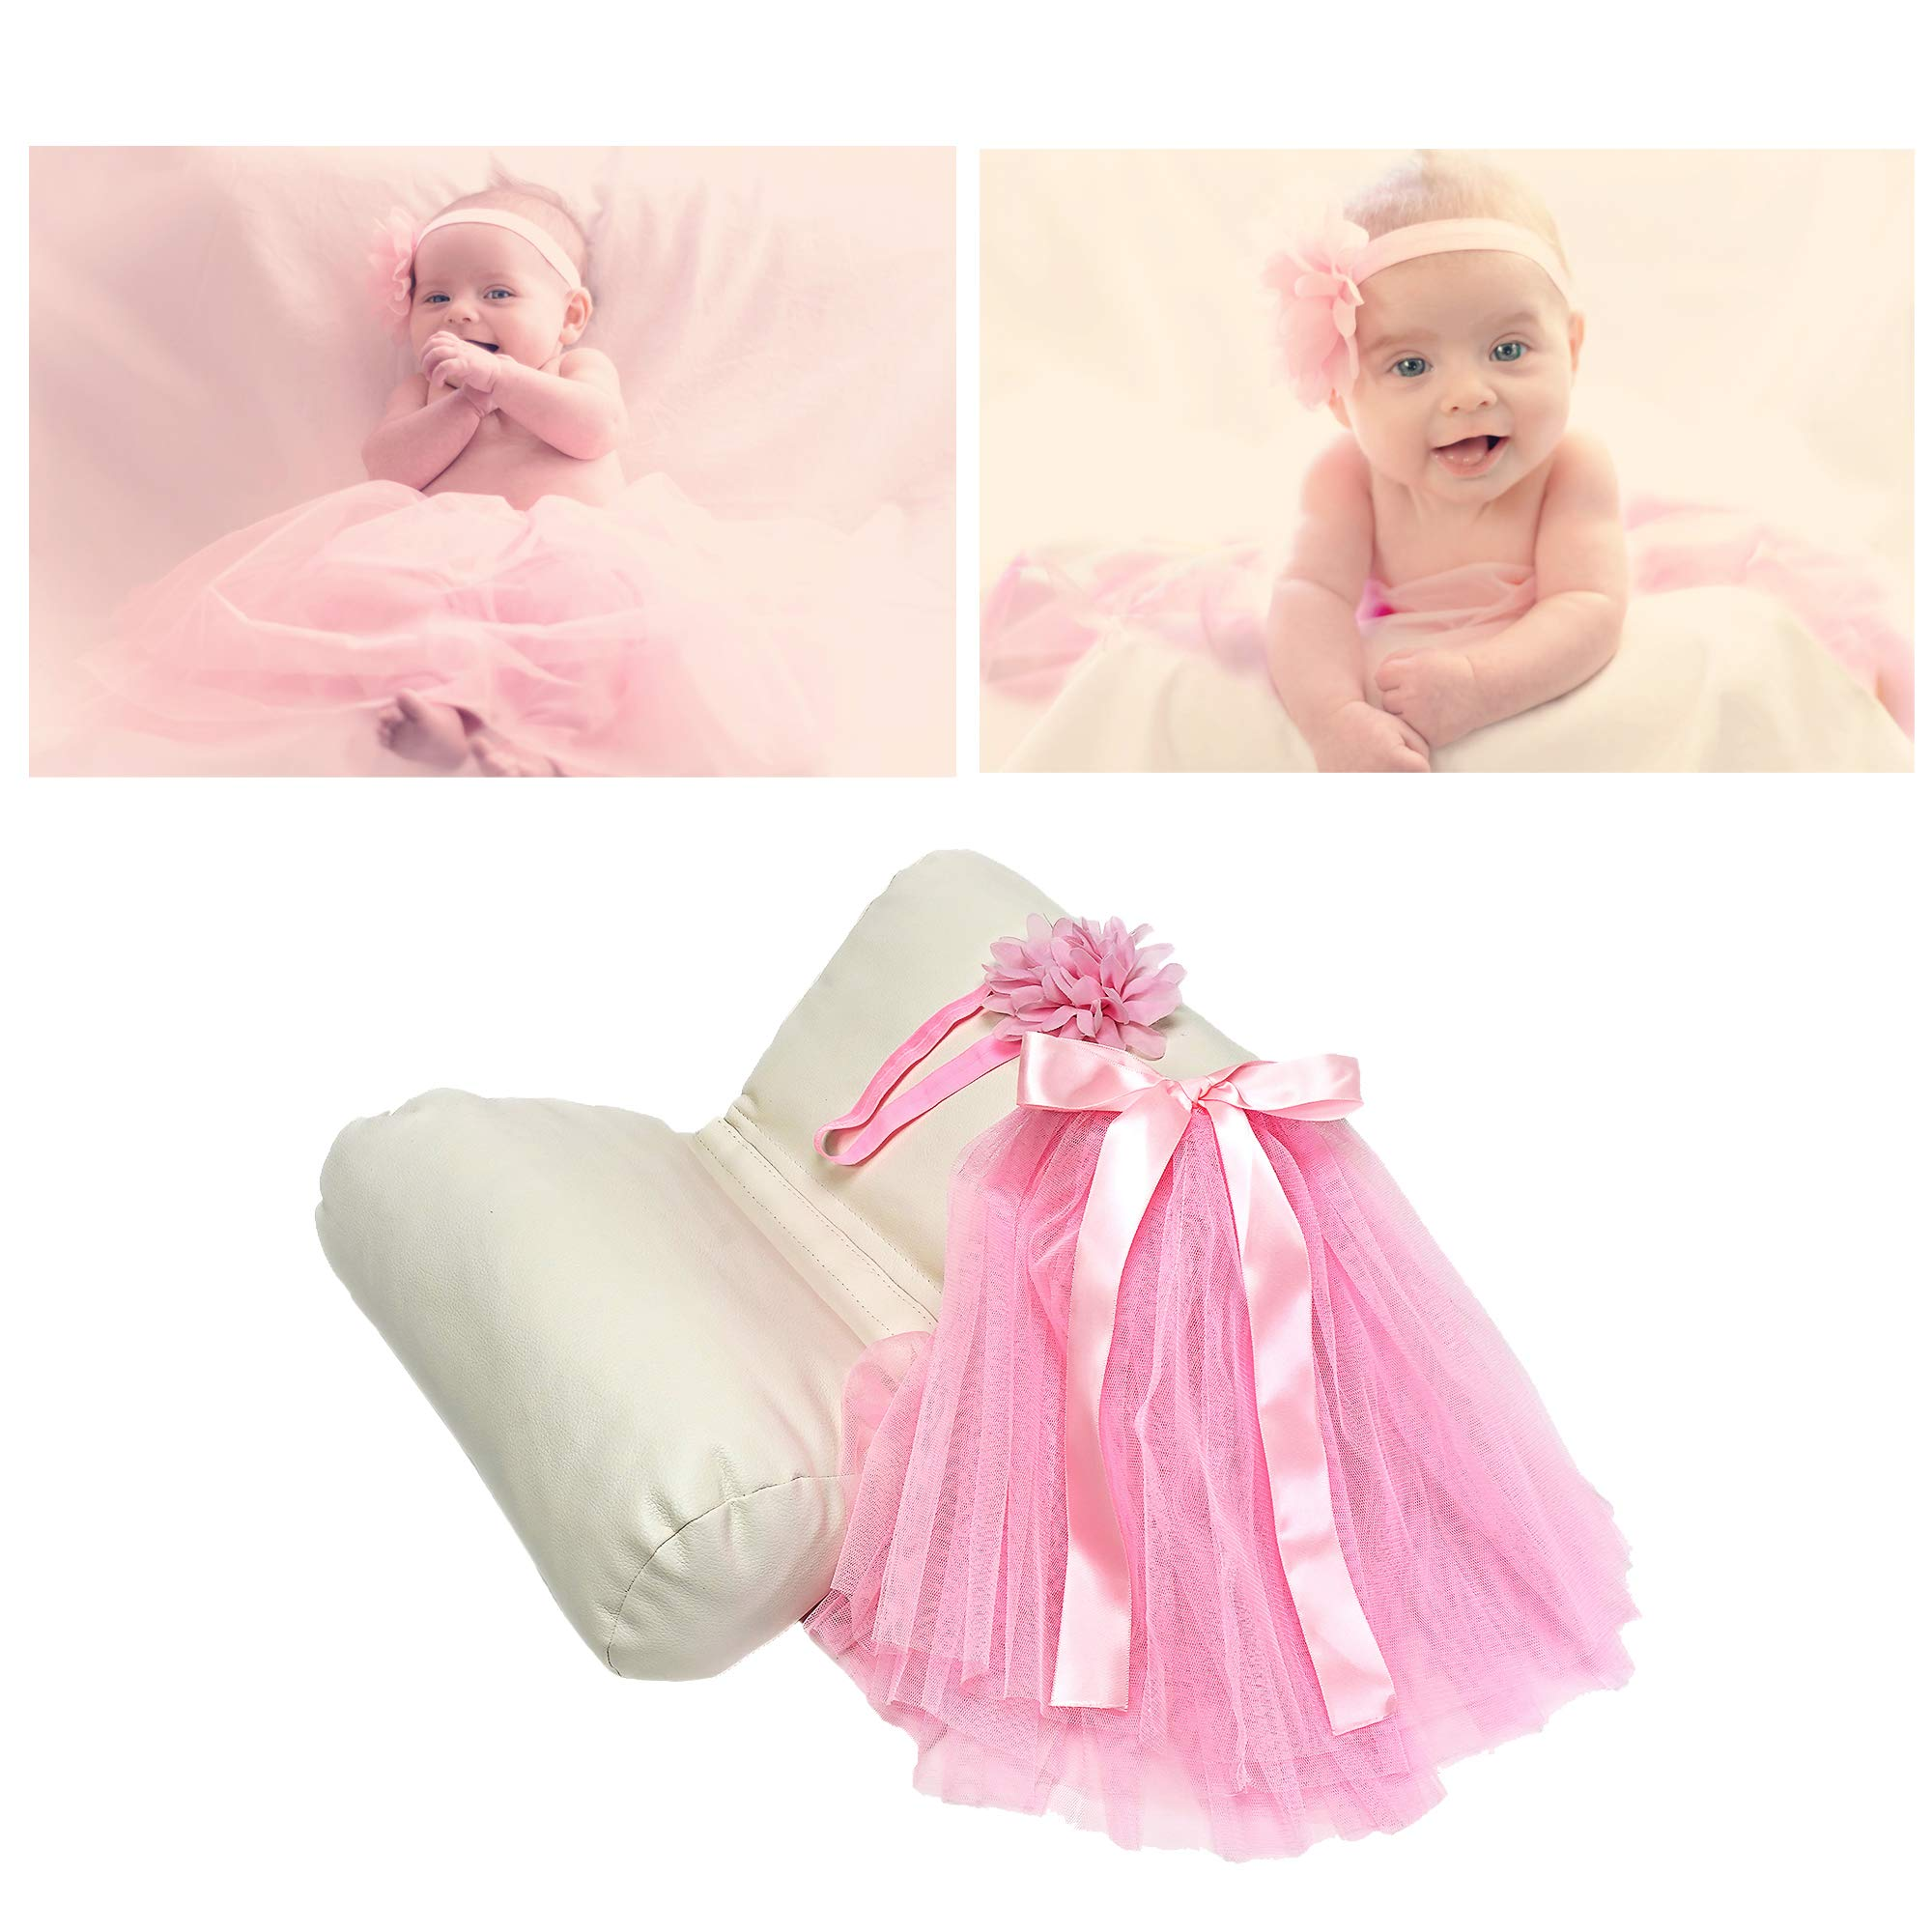 Newborn Baby Photography Props Set – Butterfly Posing Pillow and Baby Girl Outfit for Photo Shoots and Pictures – Pink Tutu and Flower Stretch Headband – for Photographers and DIY Moms & Dads